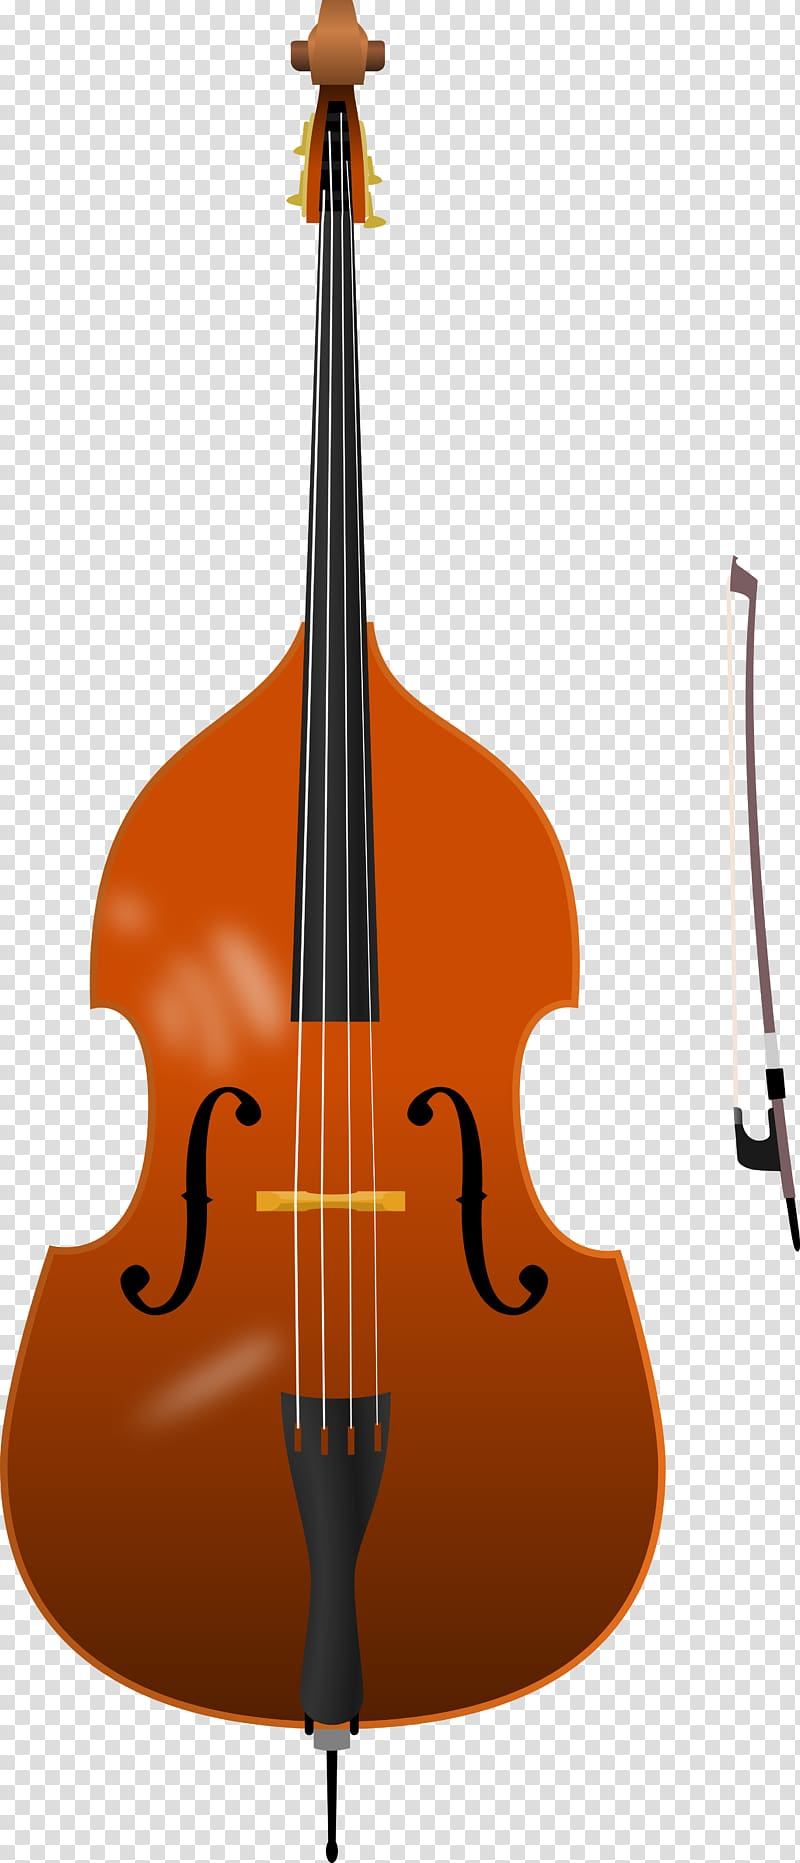 Cello clipart string bass. Double guitar instruments